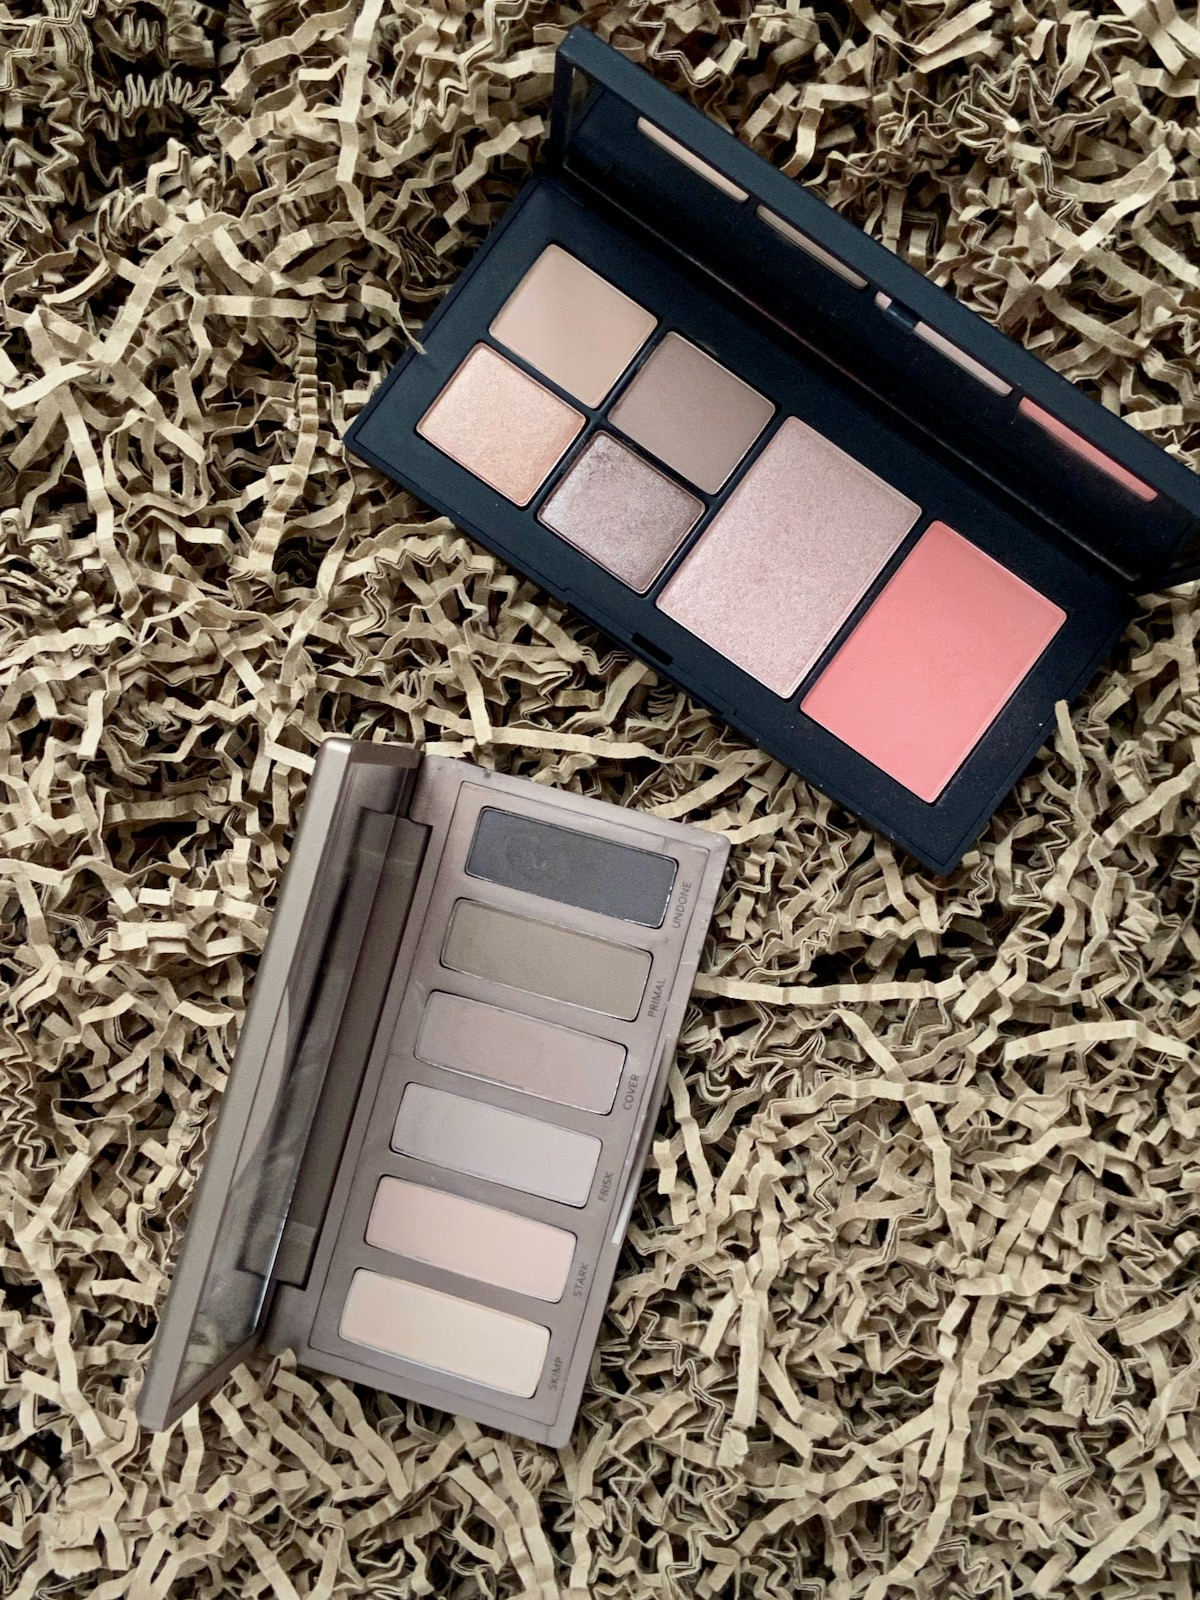 Urban Decay Naked2 Basics NARS LOST IN LUSTER FACE PALETTE 2